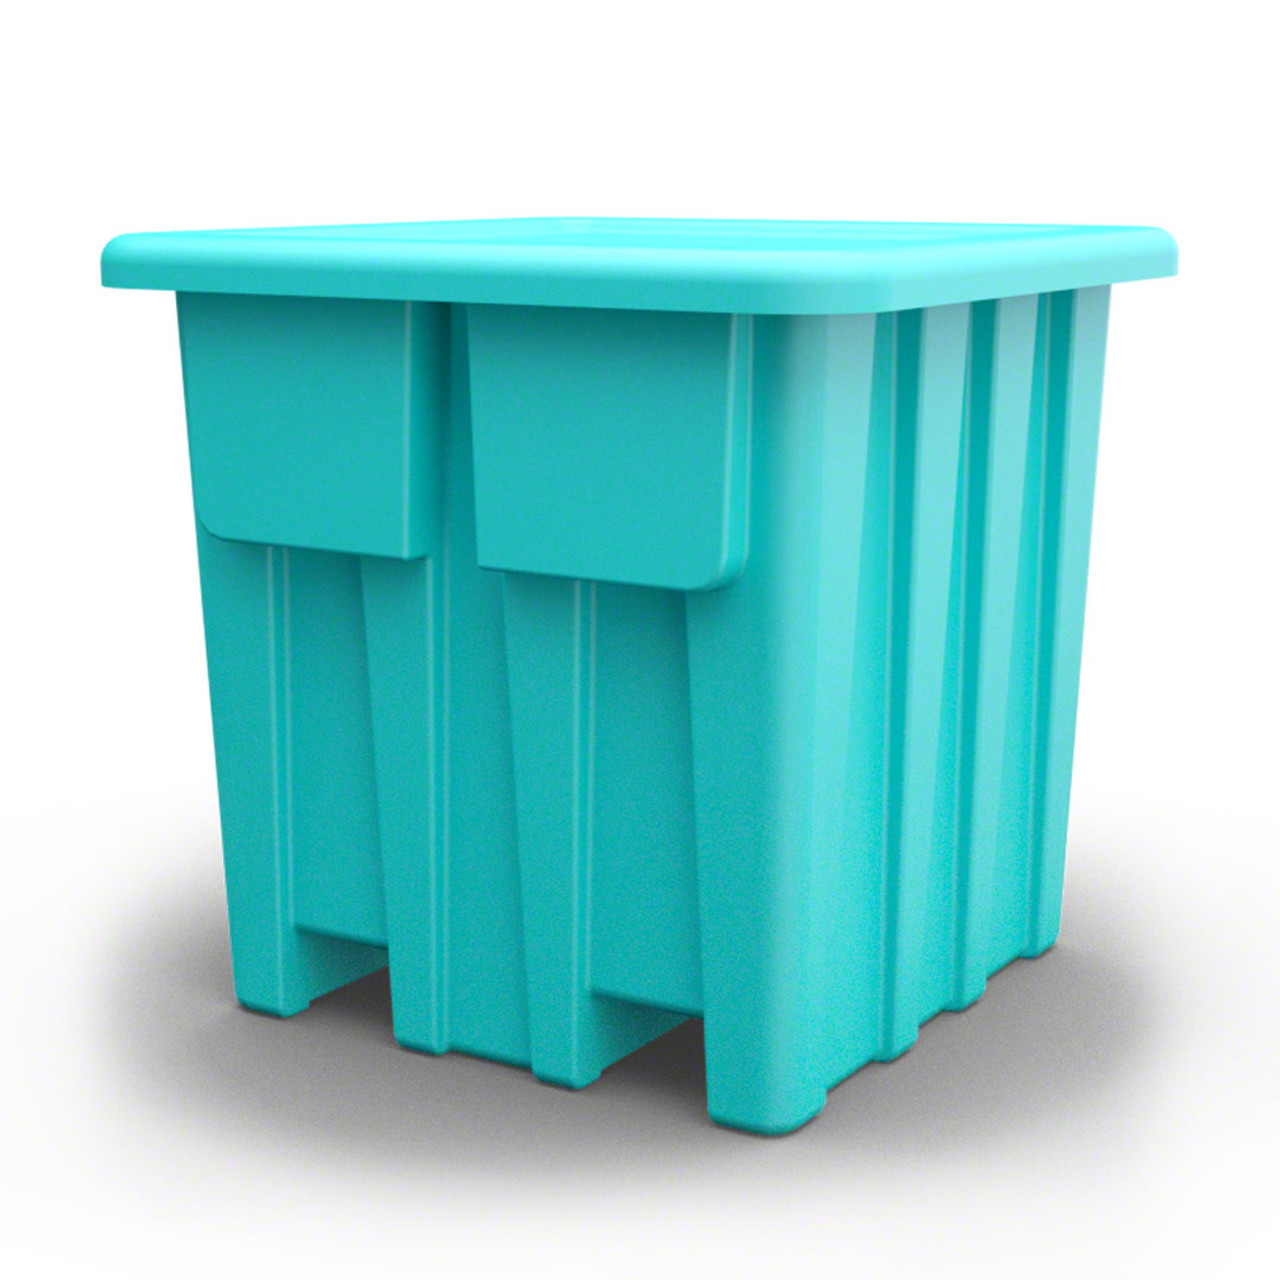 Side view Forklift container from Teal color